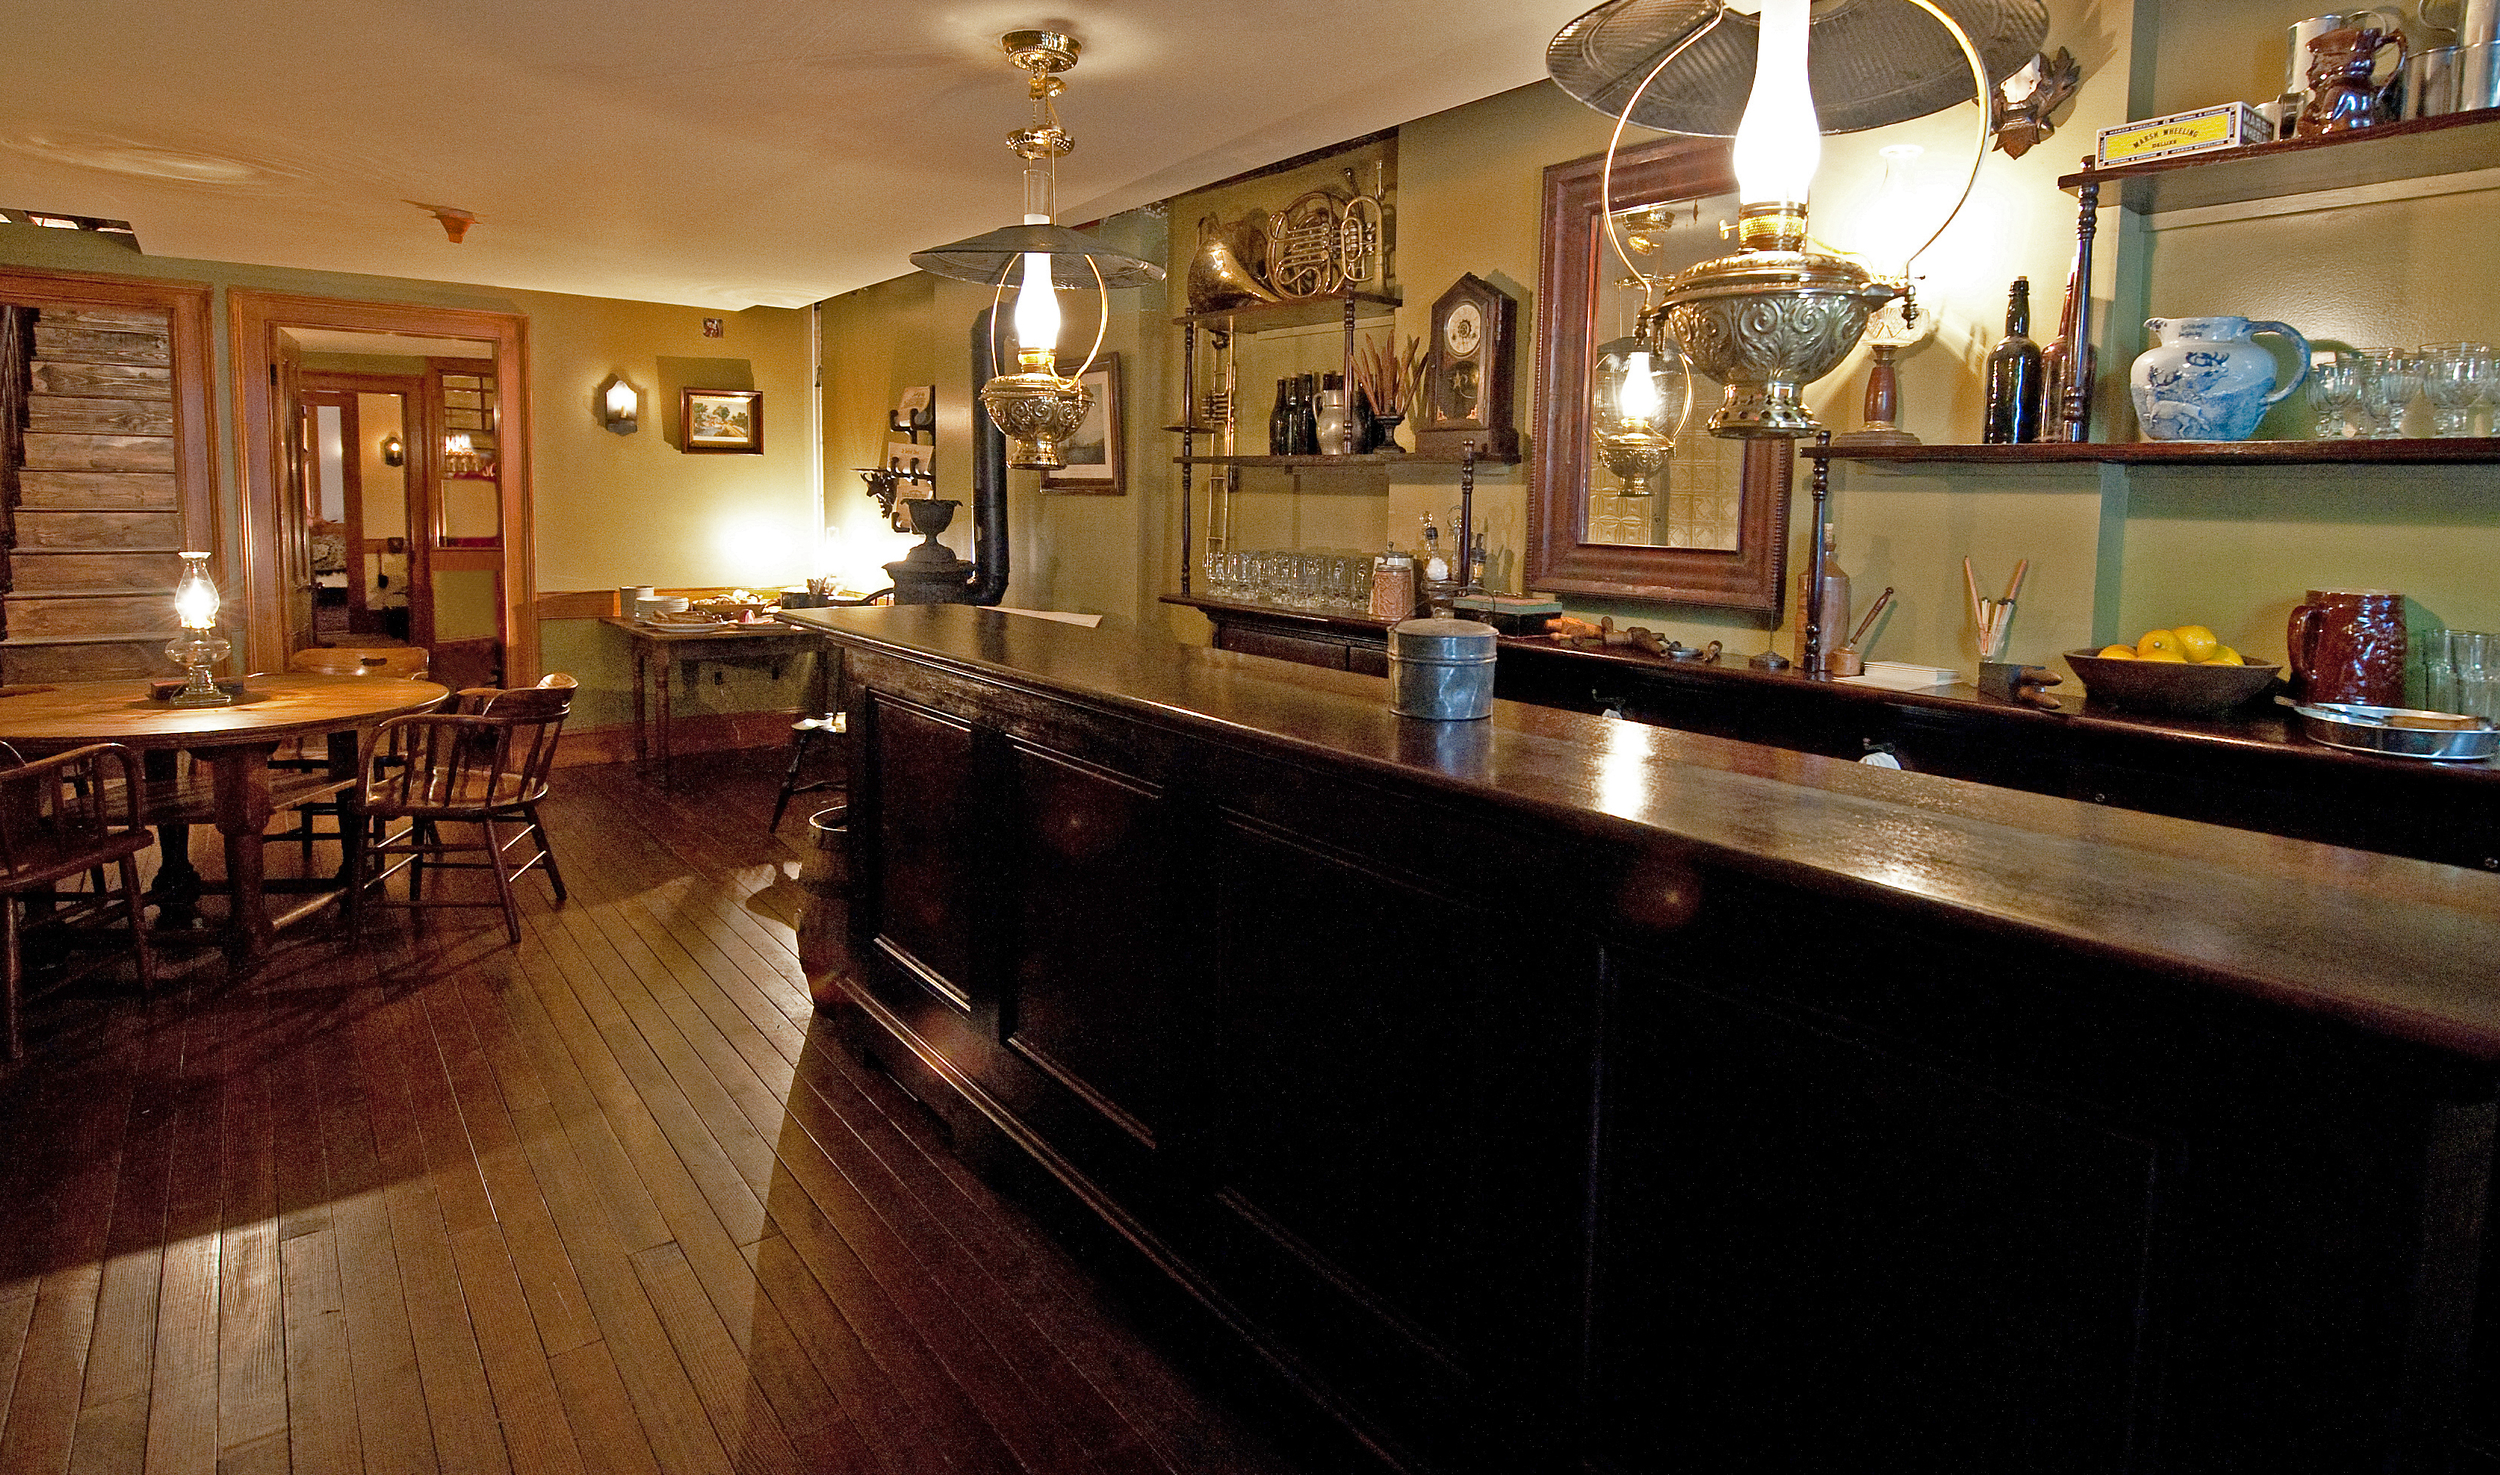 Schneider Saloon by Keiko Niwa. Courtesy of The Tenement Museum.